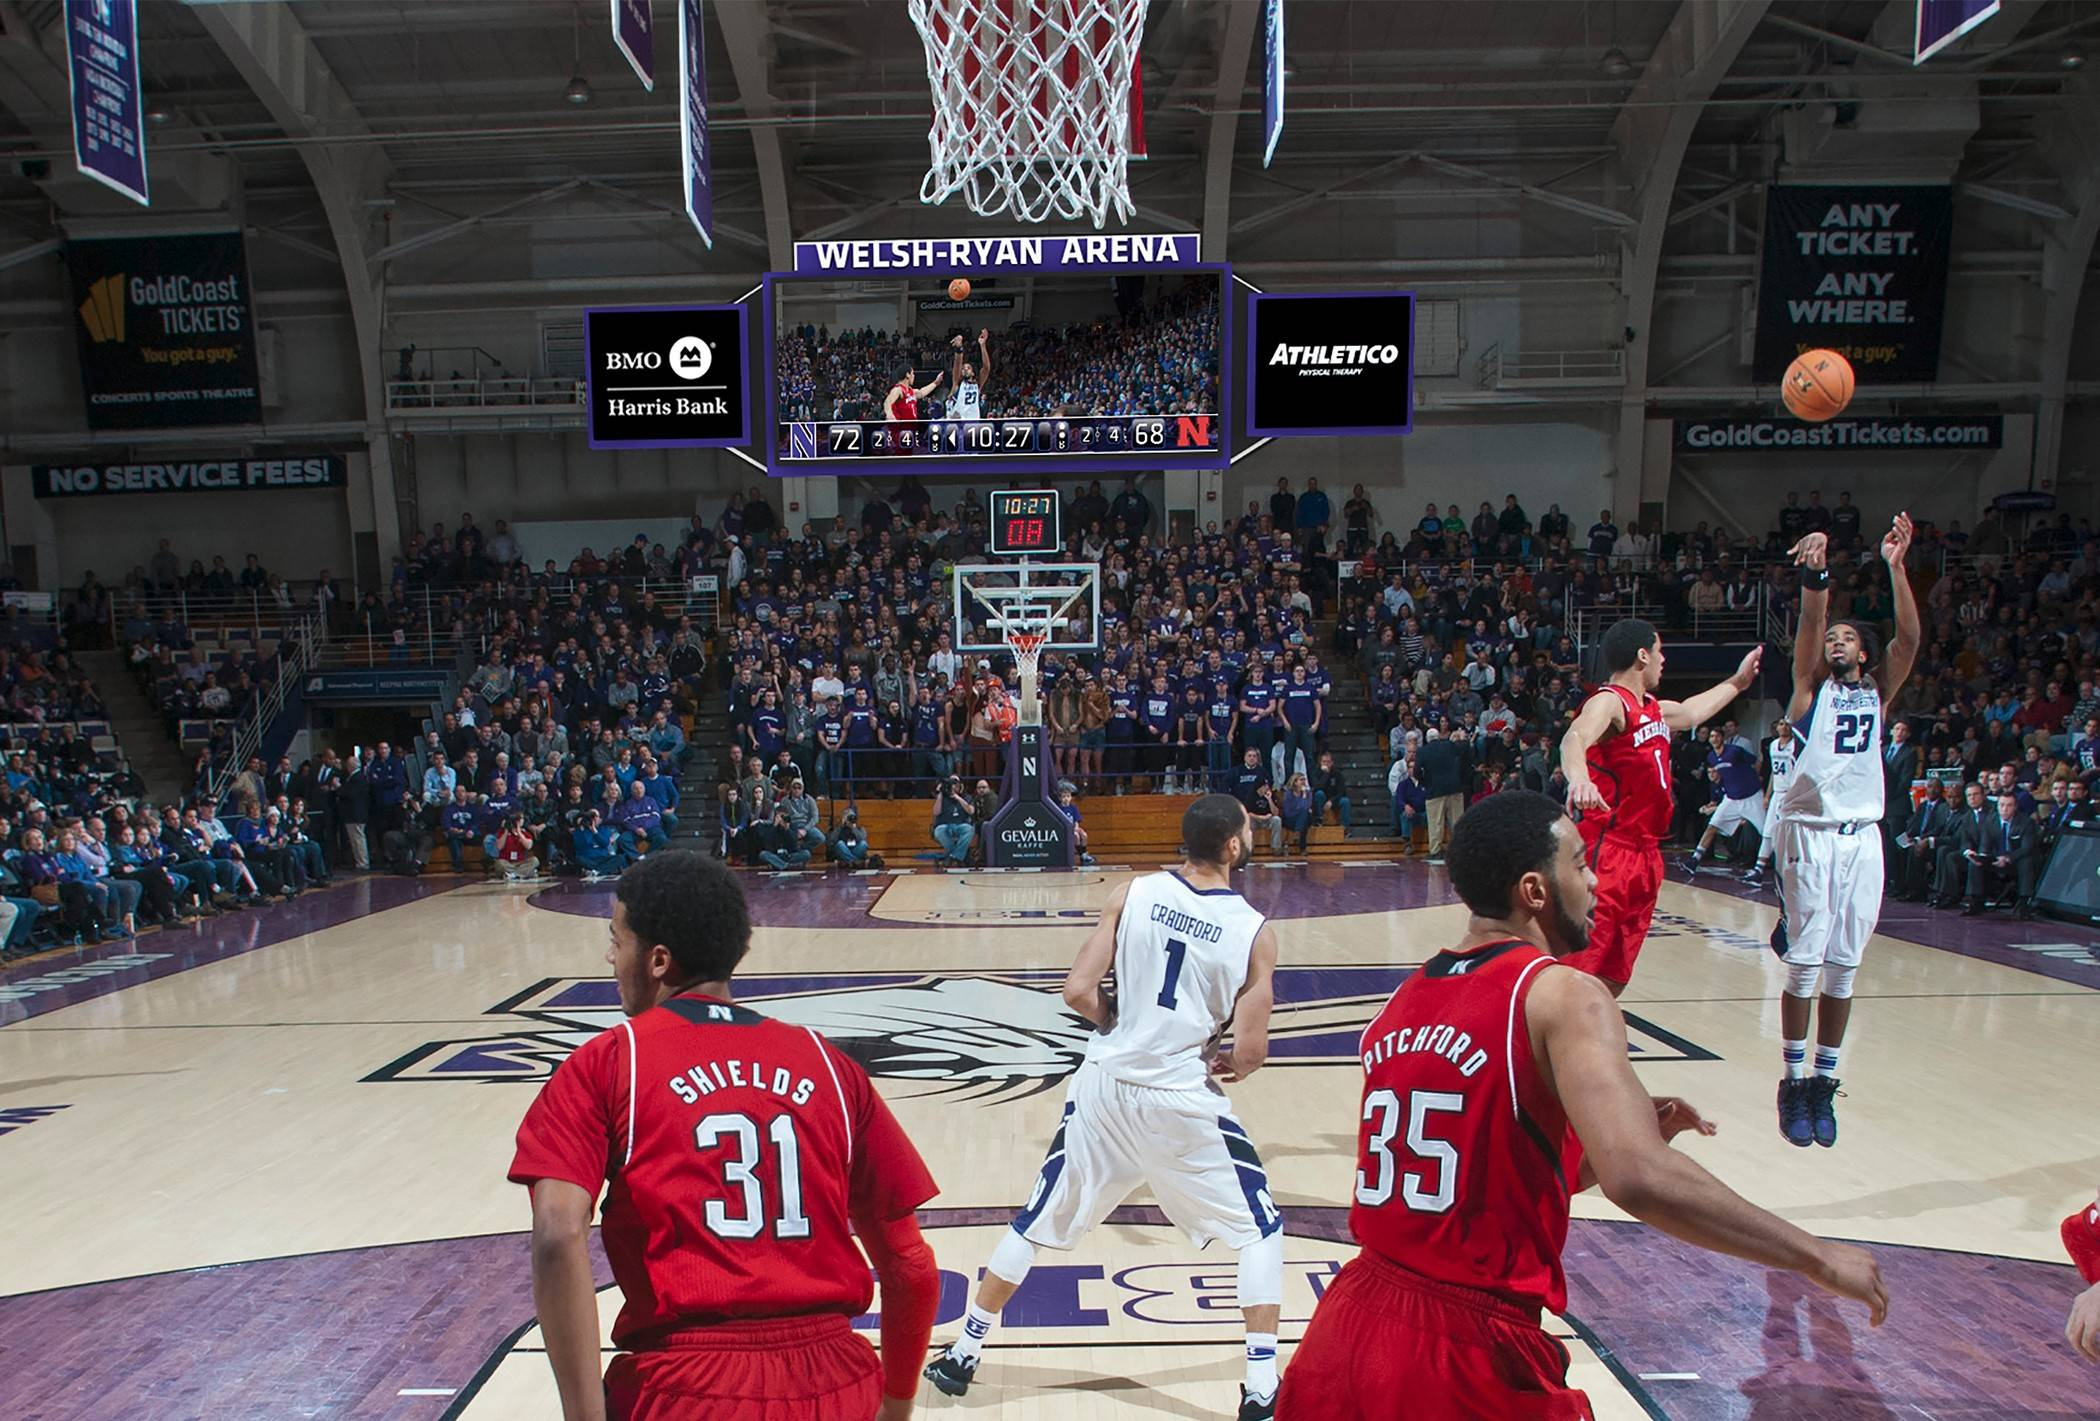 This is how the scoreboard behind the basket will look this fall at Northwestern's Welsh-Ryan Arena.